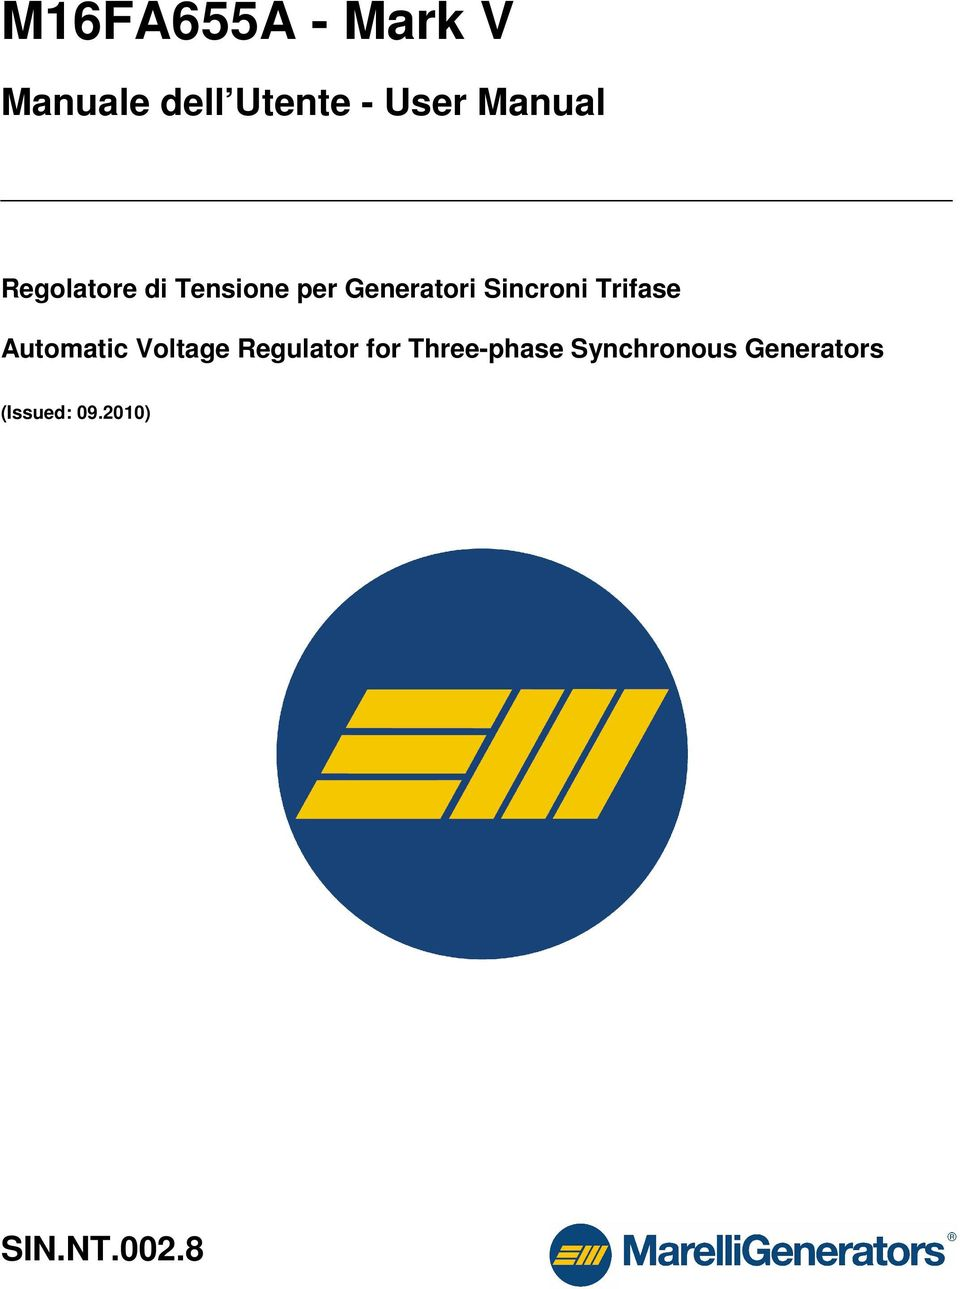 Sincroni Trifase Automatic Voltage Regulator for